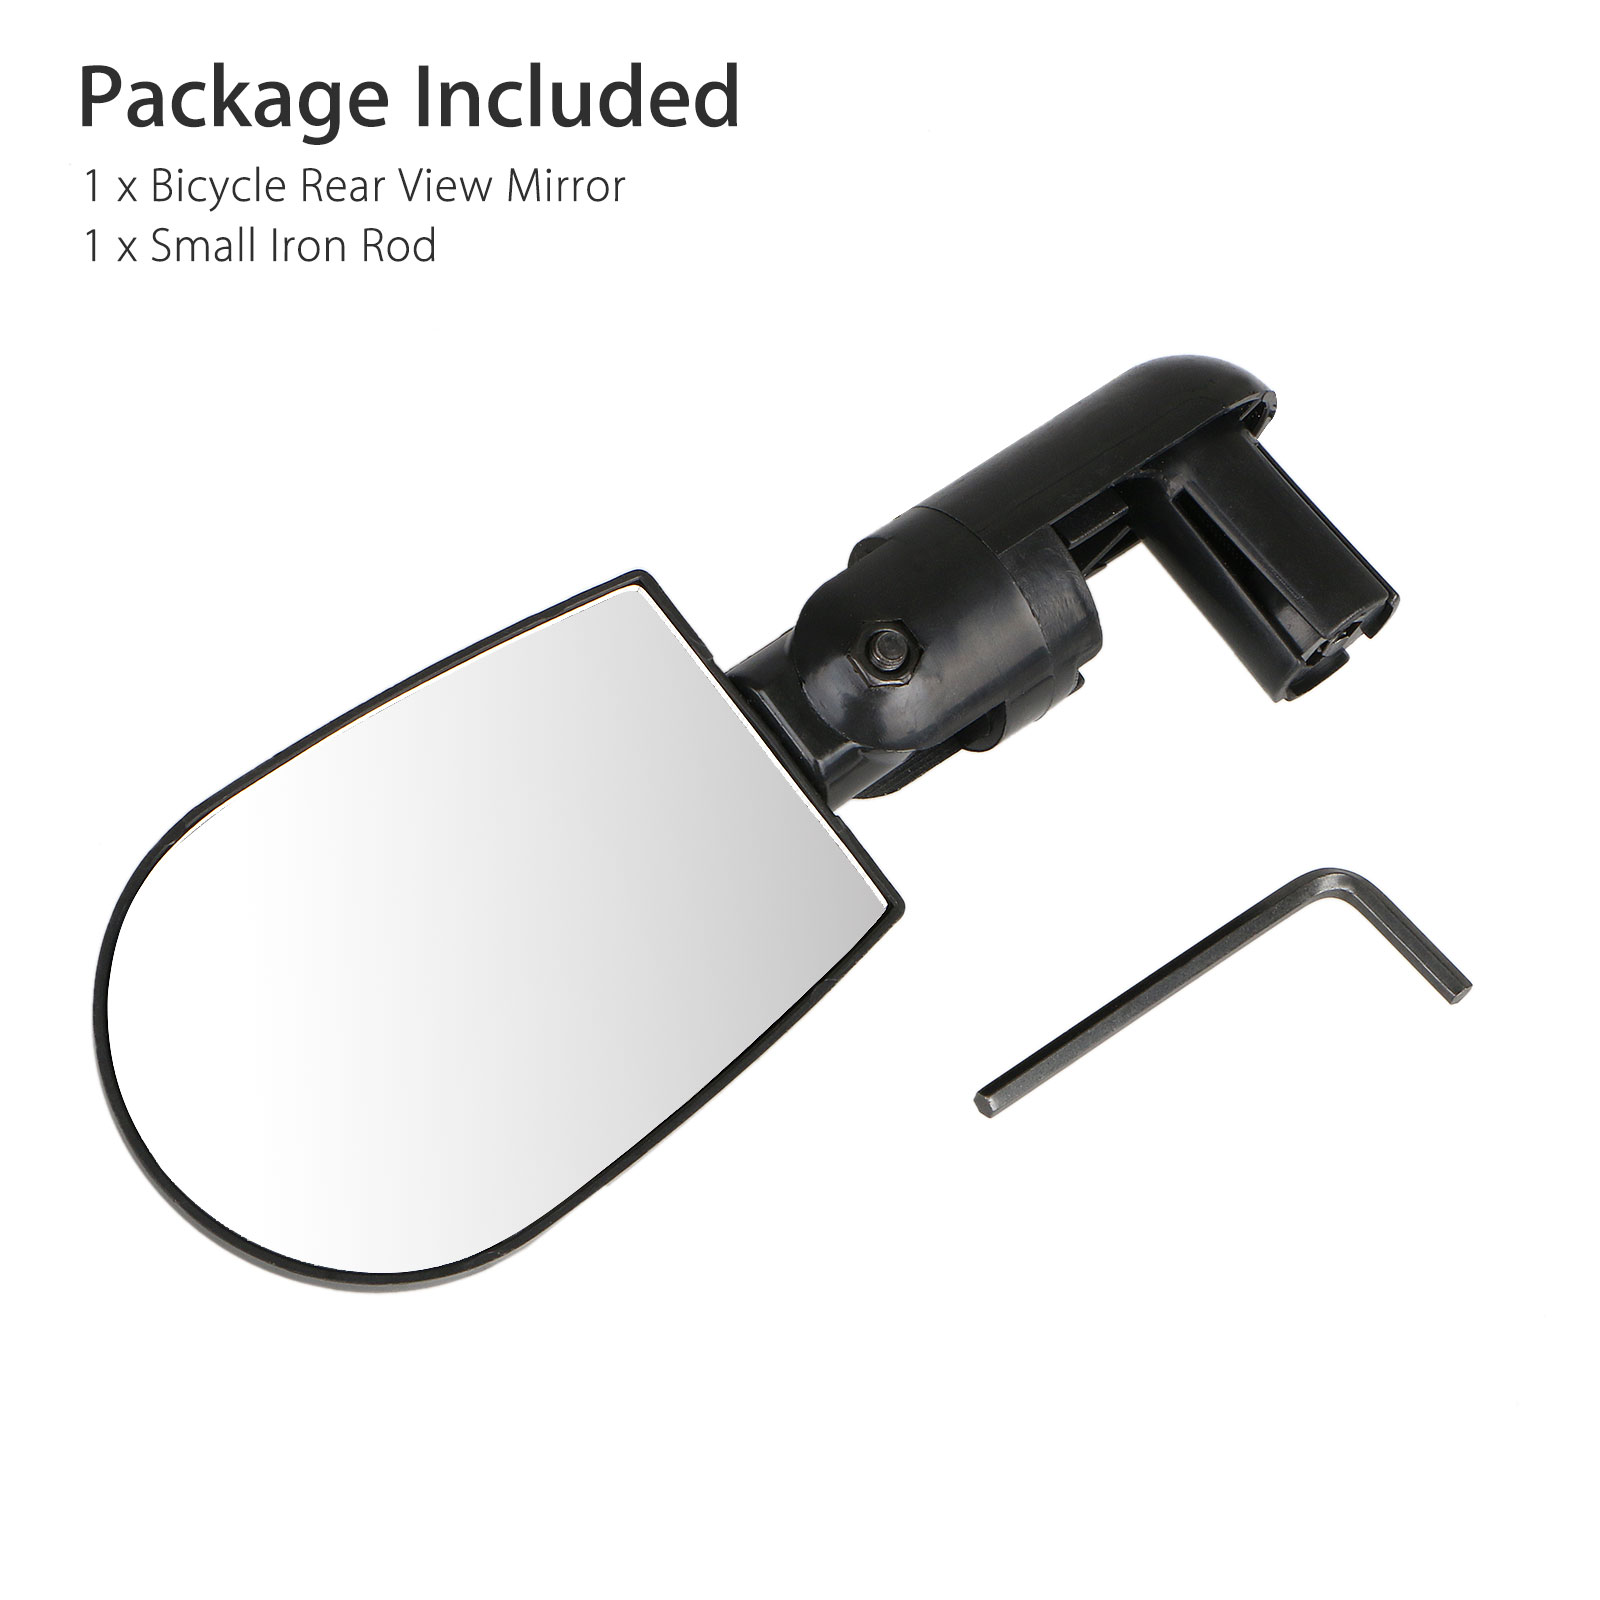 Rotatable-Handlebar-Rearview-Mirror-for-Bike-Bicycle-Cycling-Rear-View-Mirror thumbnail 8